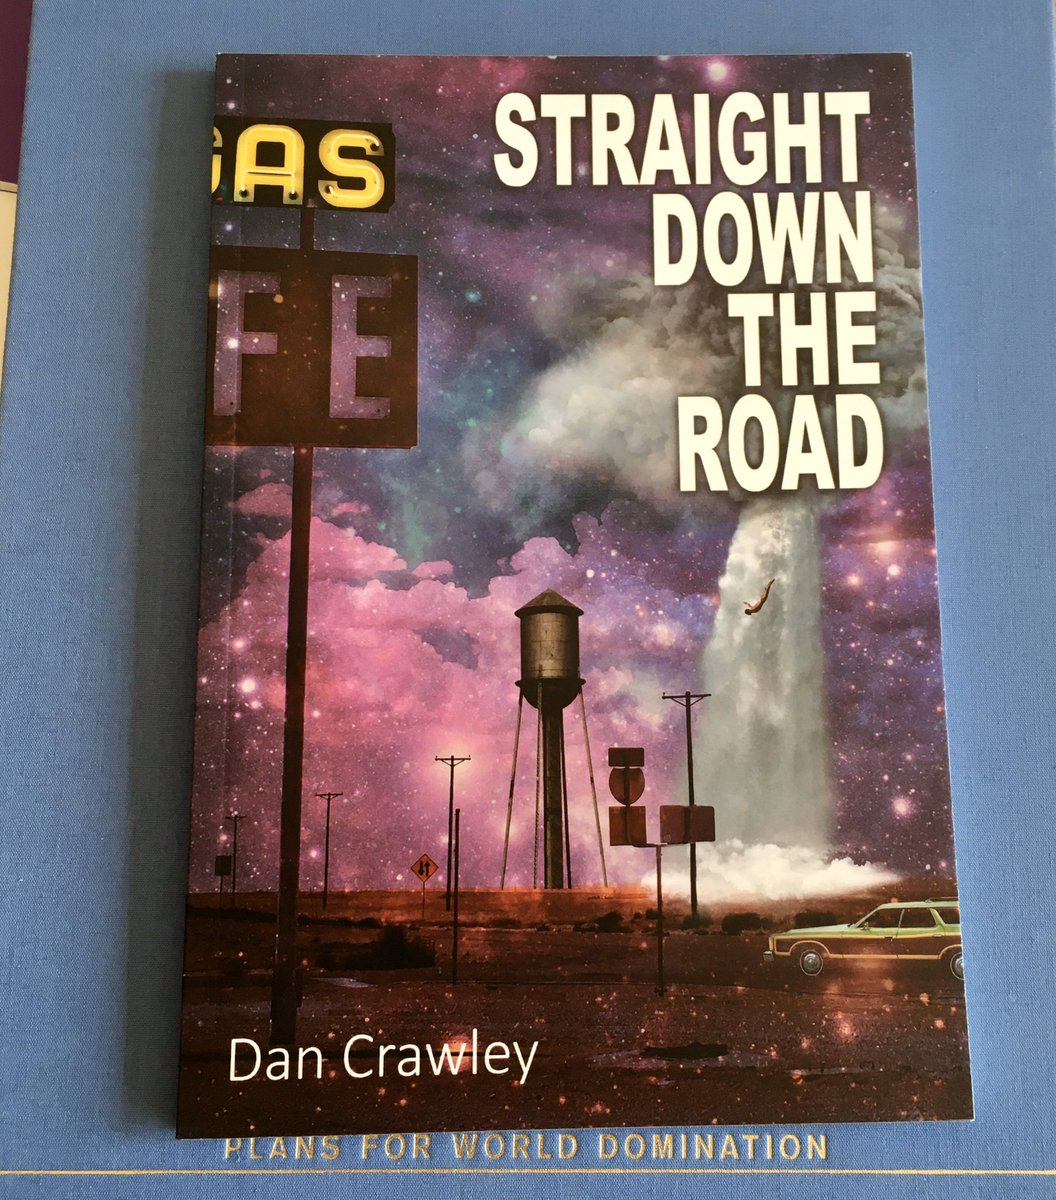 #BookPost from @AdHocFiction I'm looking forward to reading this NIF from @danbillyc